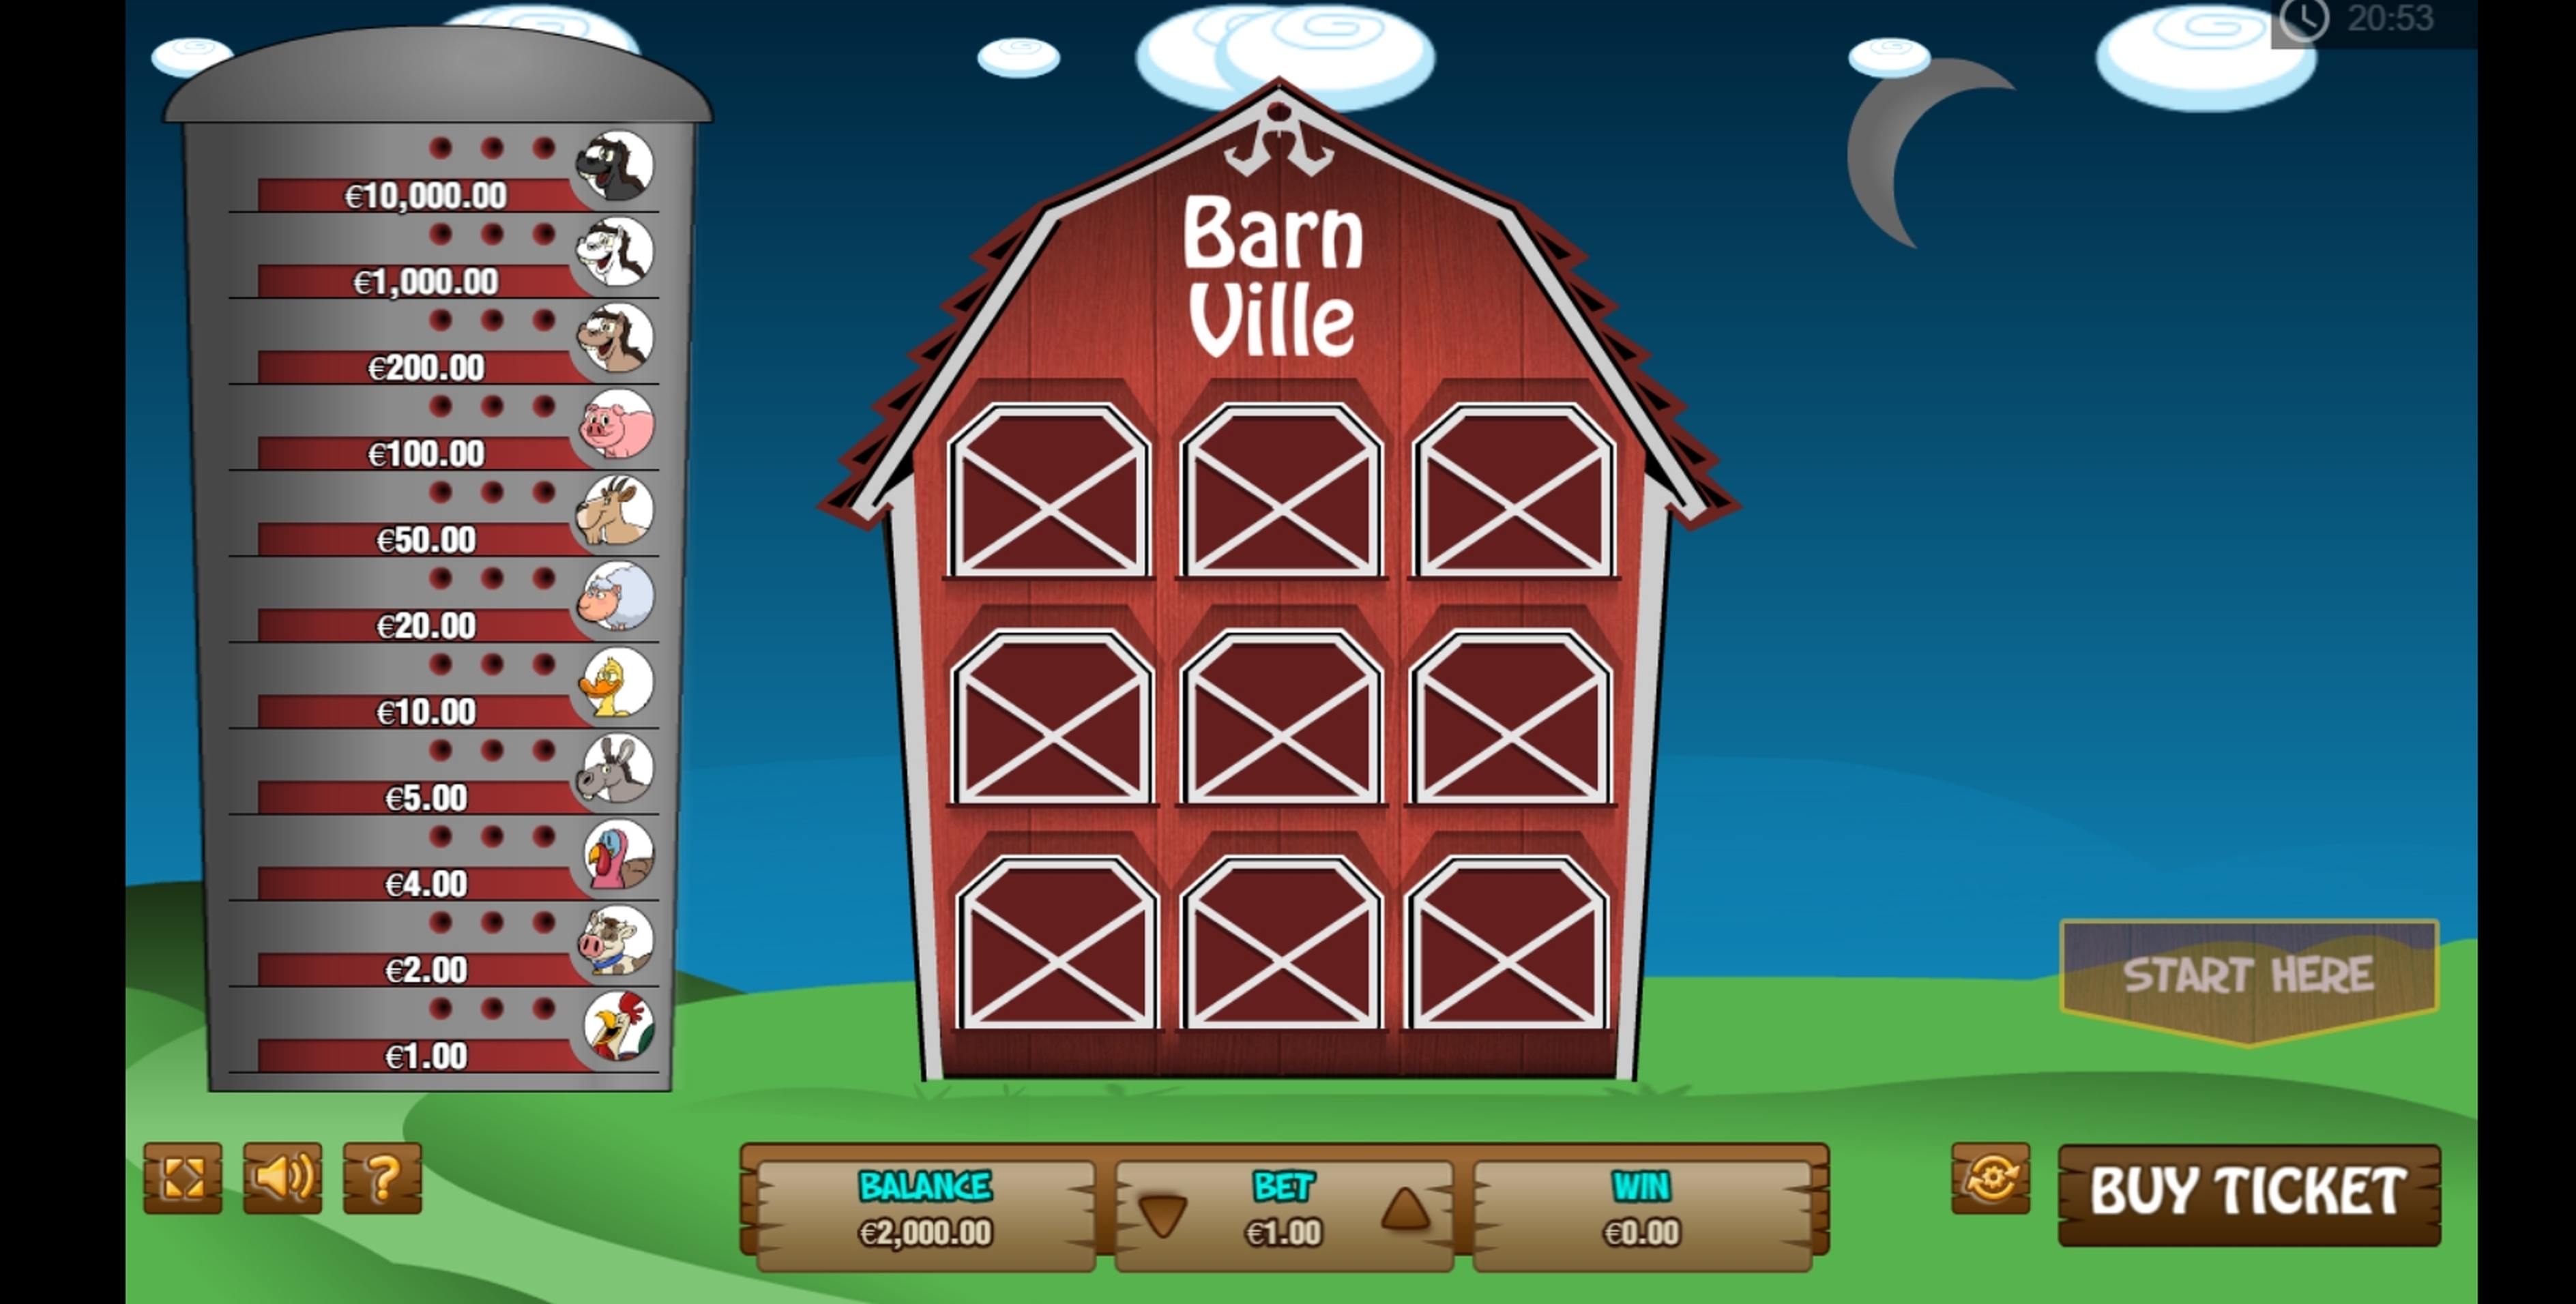 Reels in Barn Ville Scratch Slot Game by PariPlay